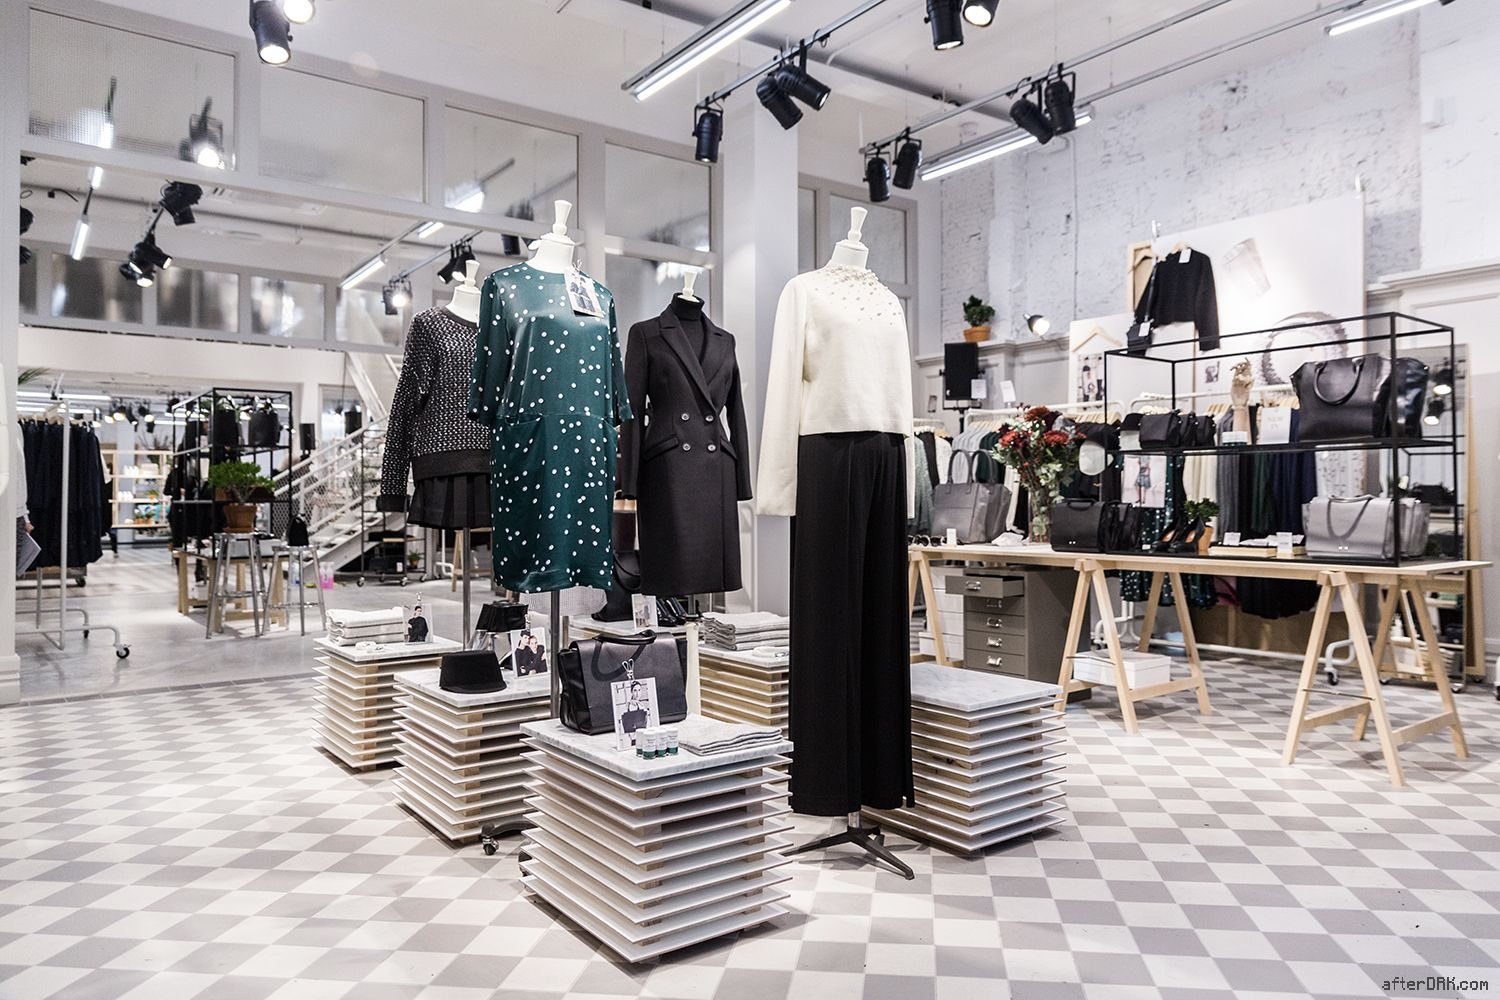 AfterDRK / & OTHER STORIES IN AMSTERDAM! // #Fashion